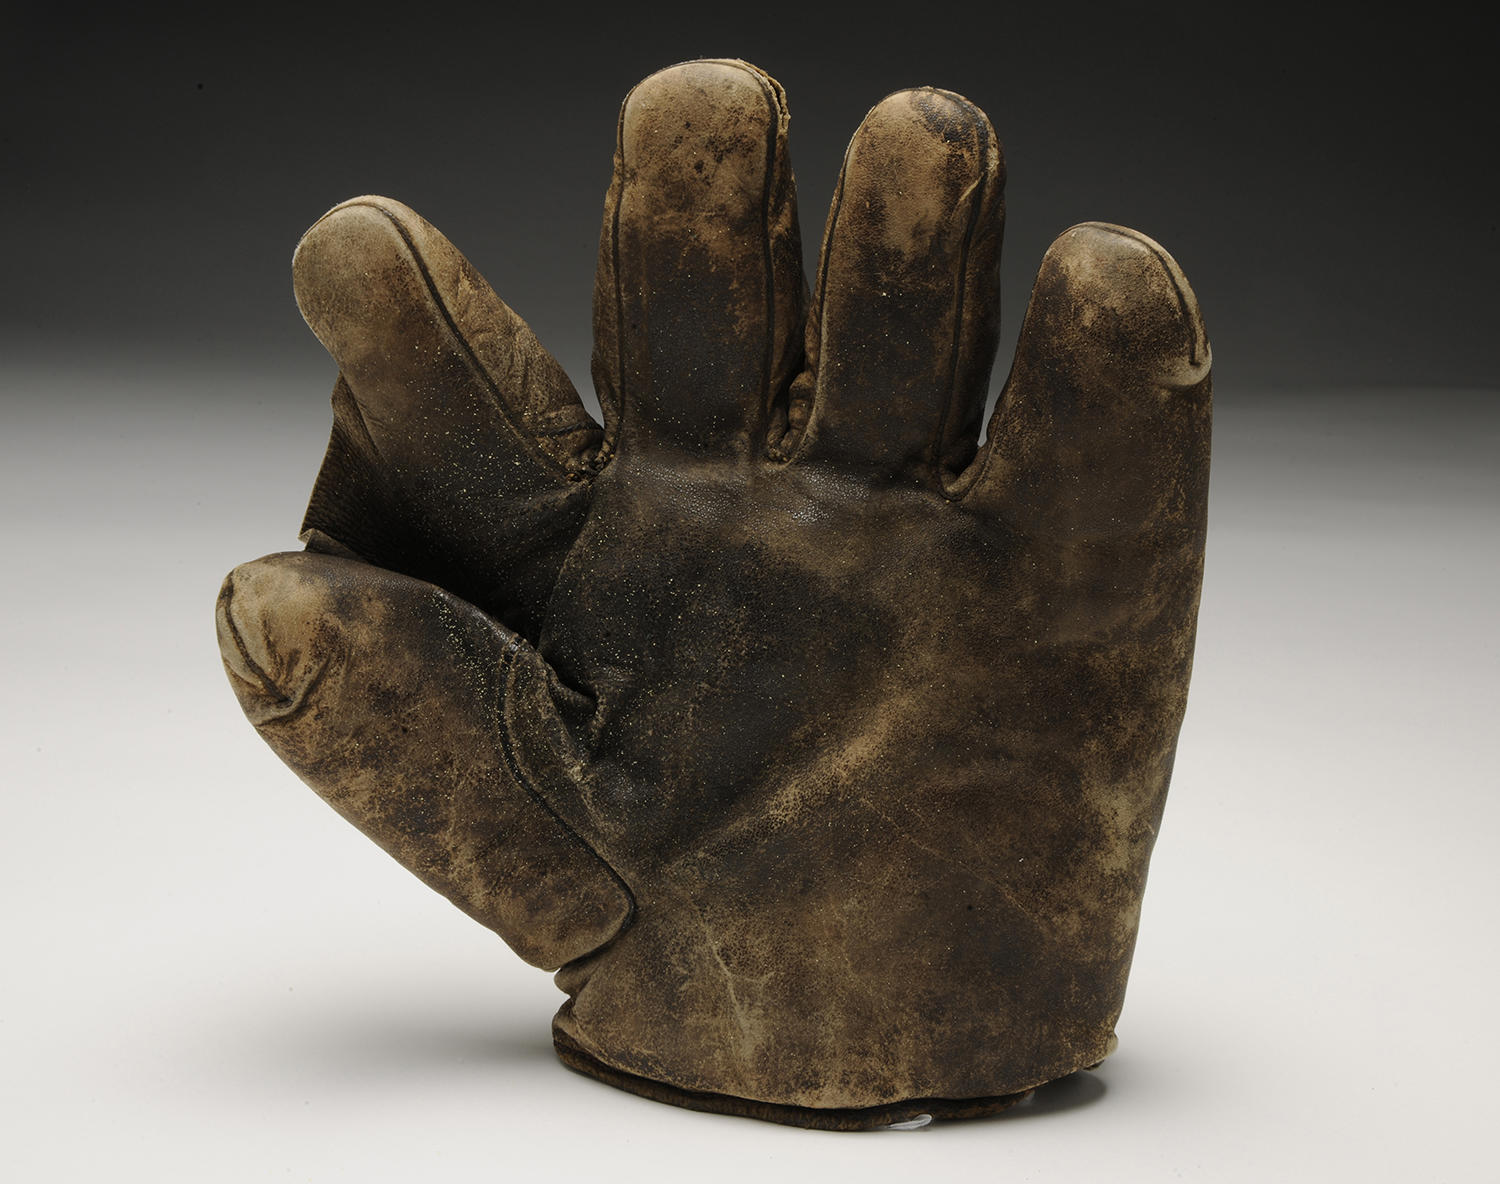 Hall of Fame center fielder Ty Cobb used this glove in 1912 when he was playing for the Detroit Tigers. (Milo Stewart Jr. / National Baseball Hall of Fame and Museum)